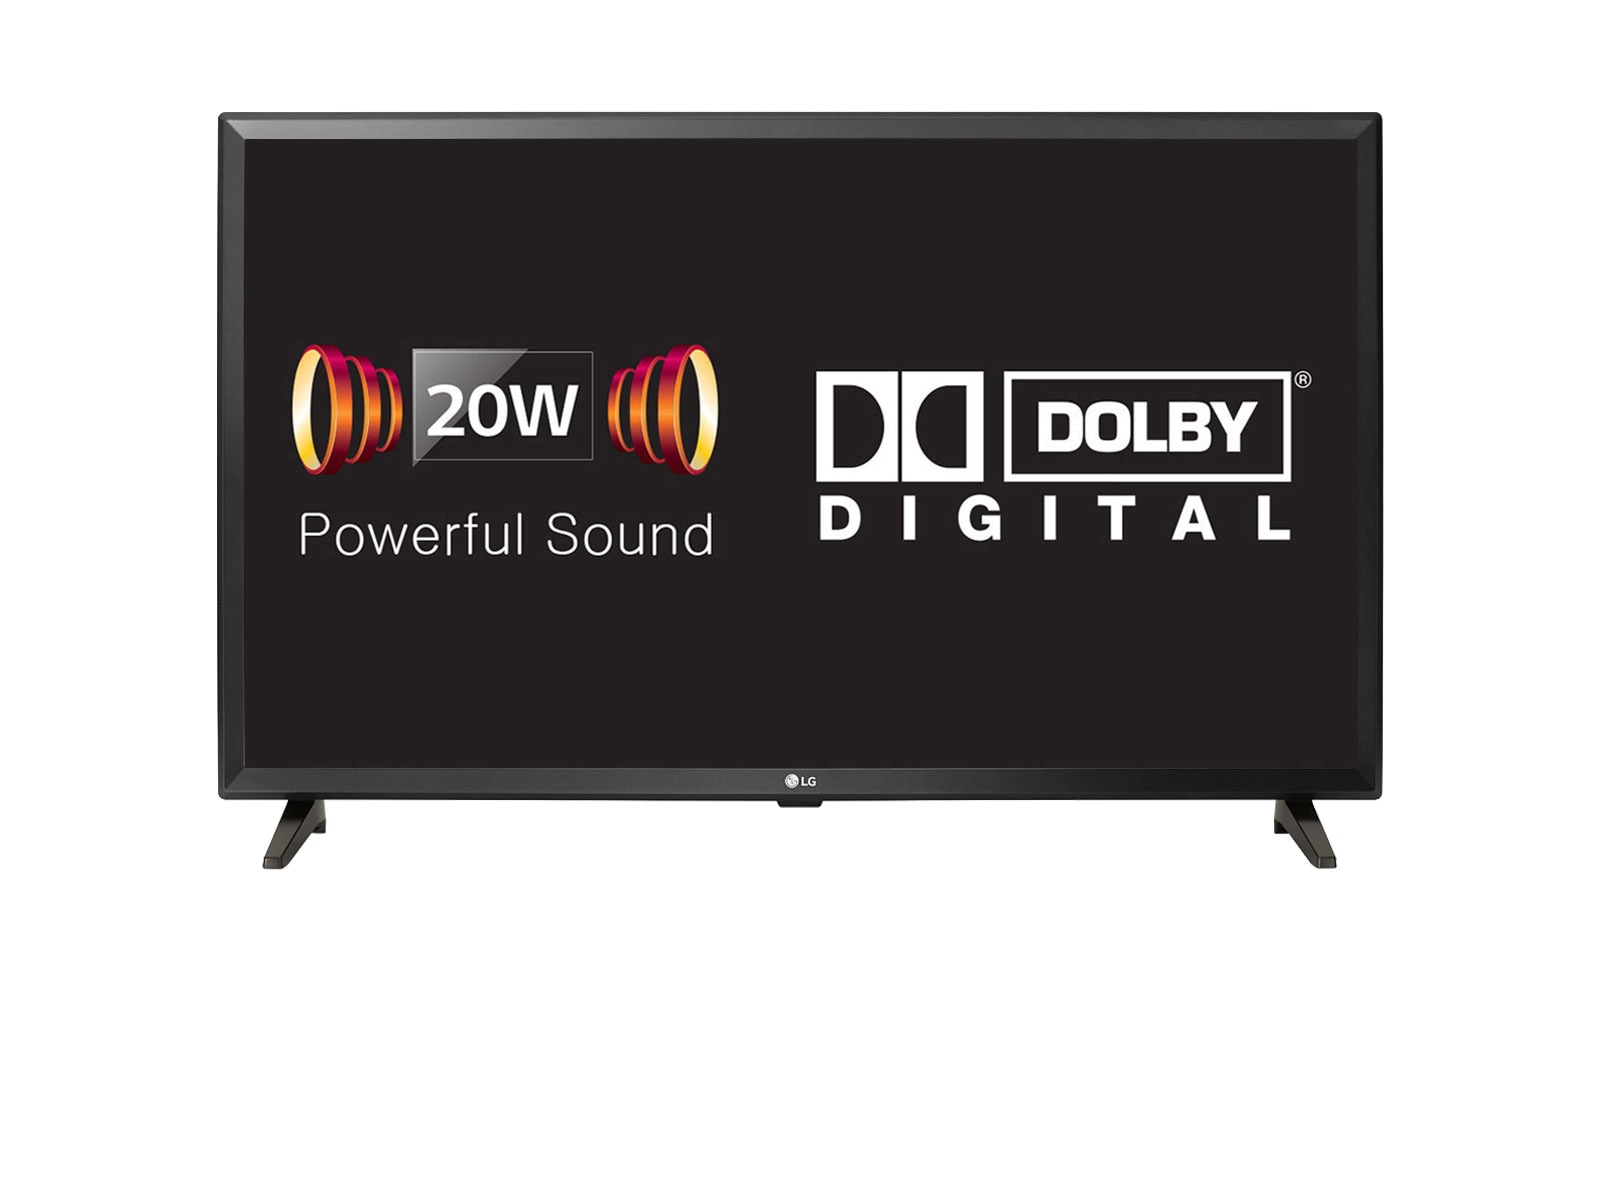 LG 20W Powerful Sound LED TV